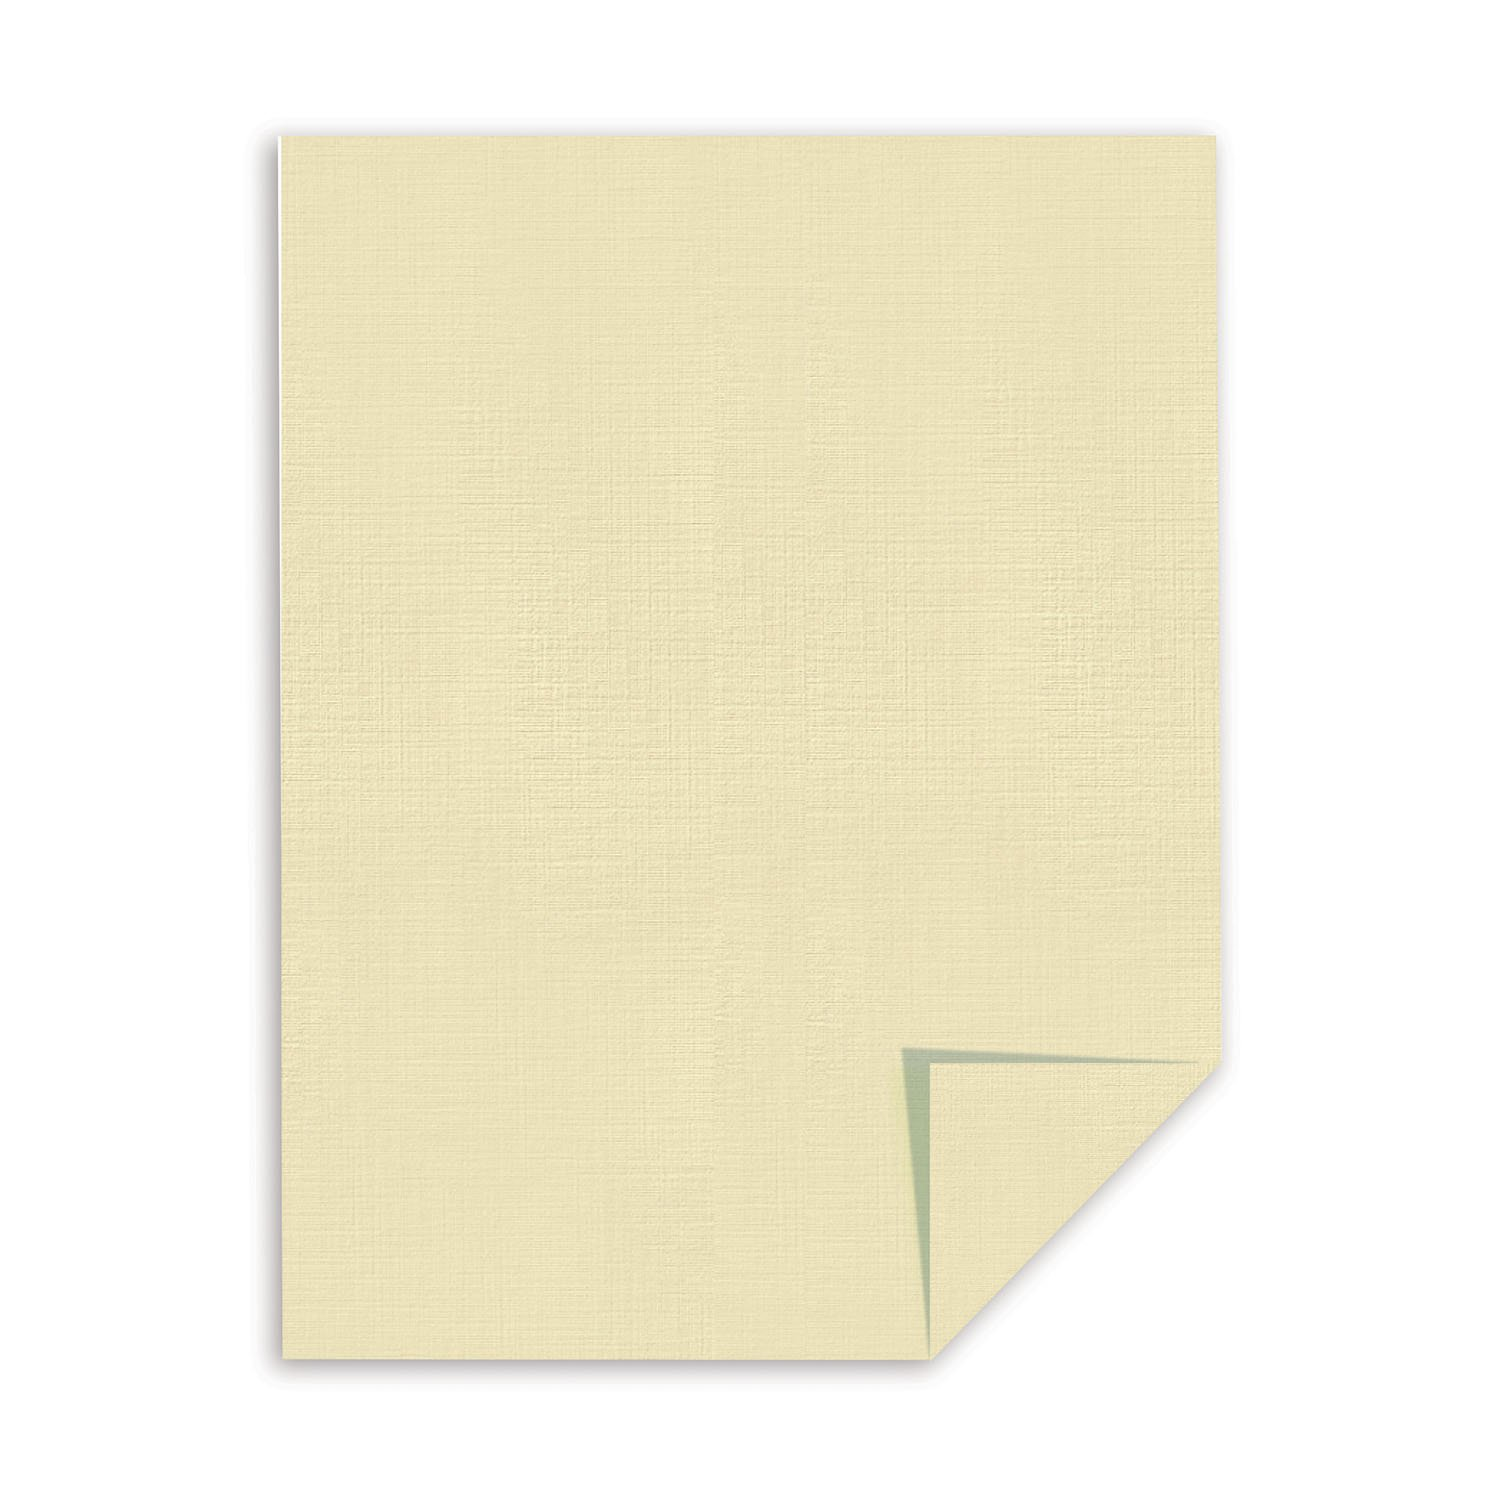 Wonderful Amazon.com : Southworth Fine Linen Paper, 20.05 Cotton, Size 24, Ivory, 500  Sheets (564C) : Writing Paper : Office Products